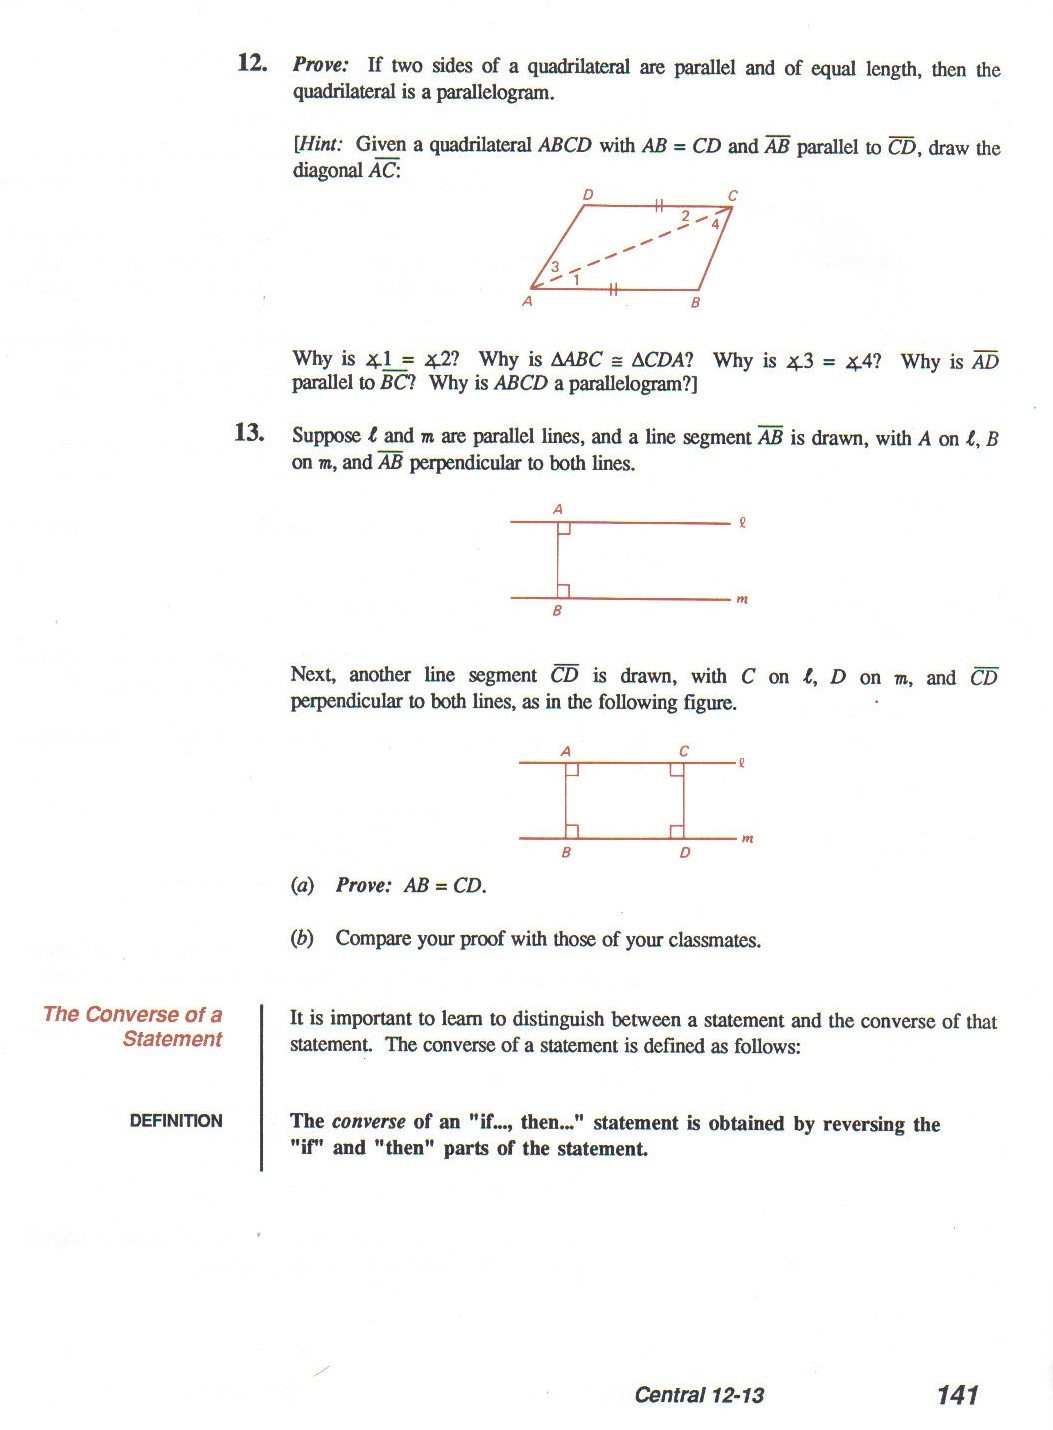 Geometric Proofs Worksheet with Answers Geometry Worksheet Beginning Proofs Answers